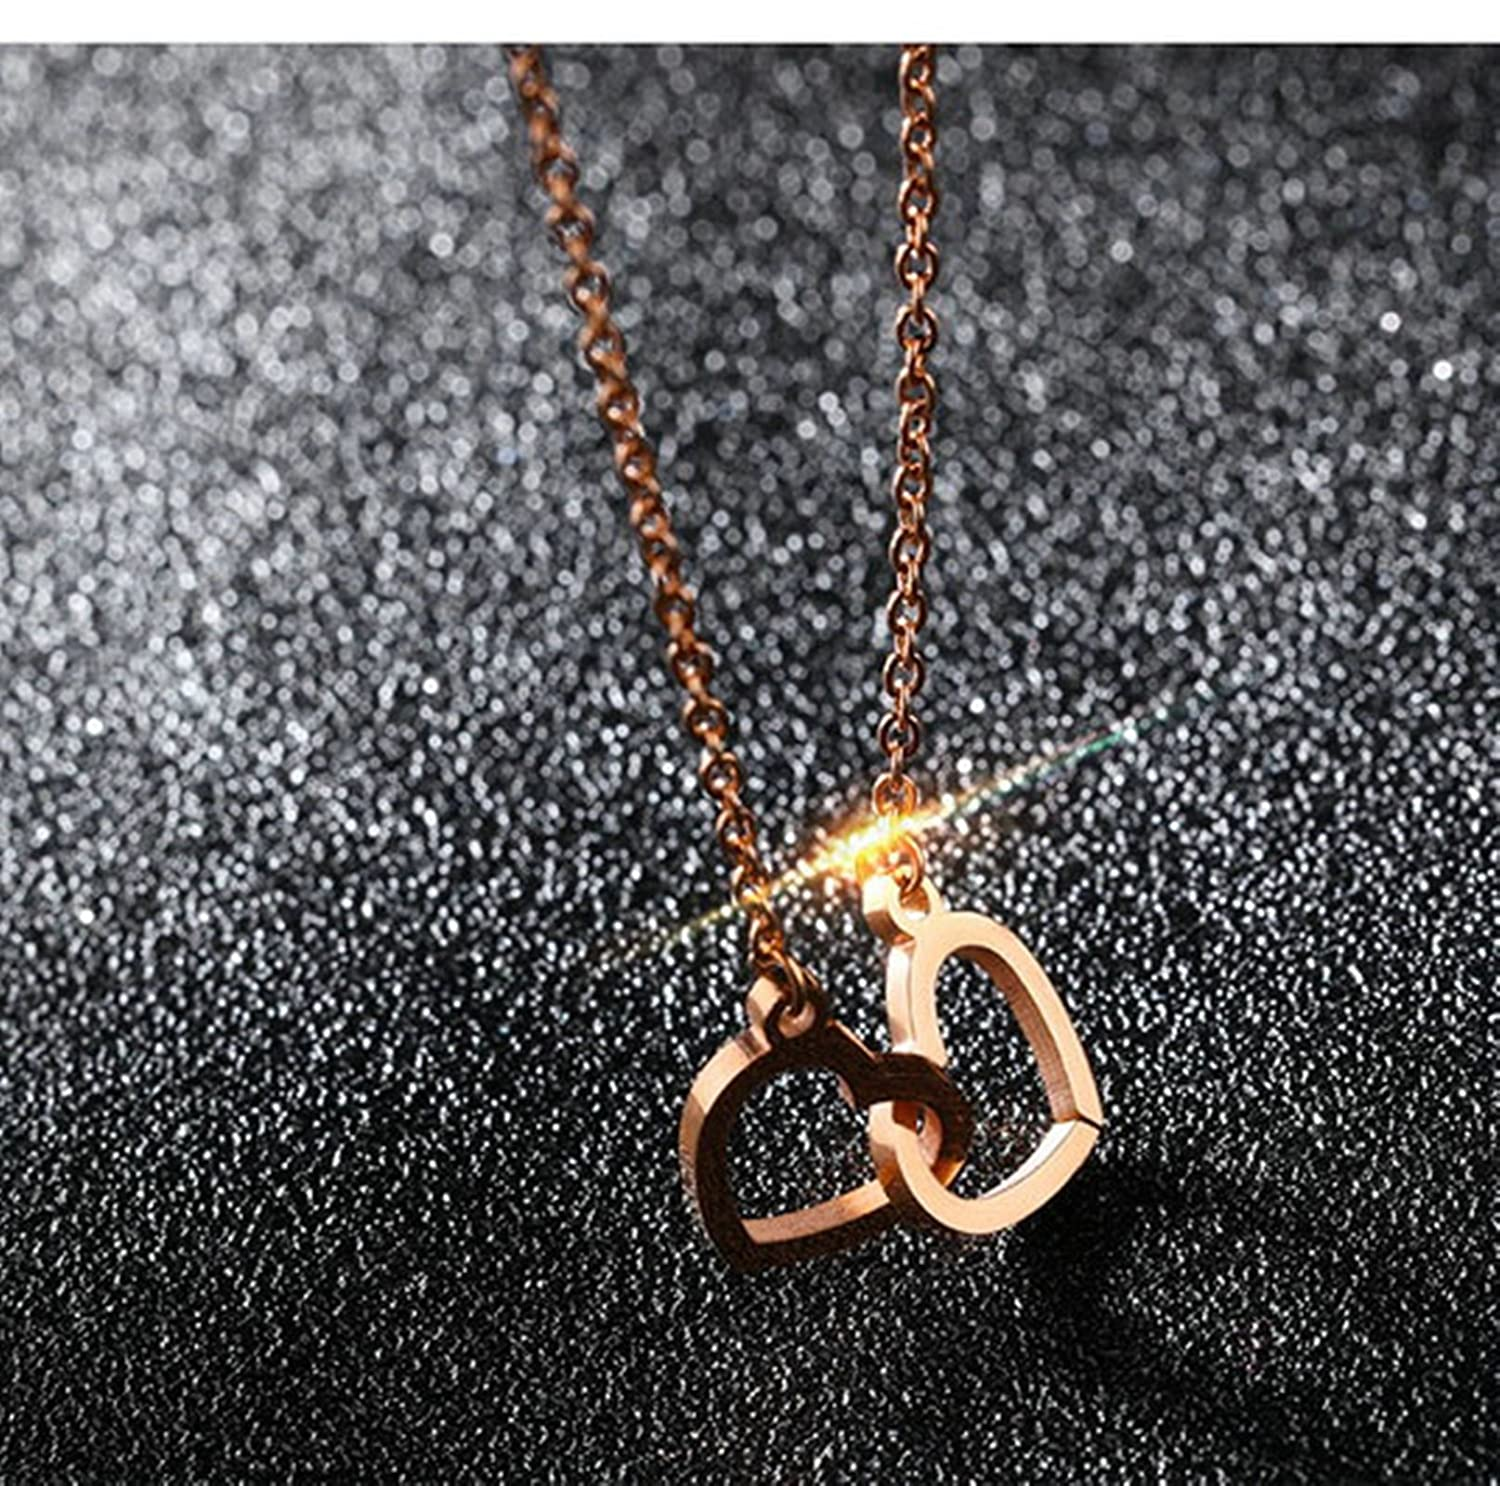 Women Stainless Steel Pendant Necklace Heart Shape Rose Gold 1.2CM Gnzoe Jewelry